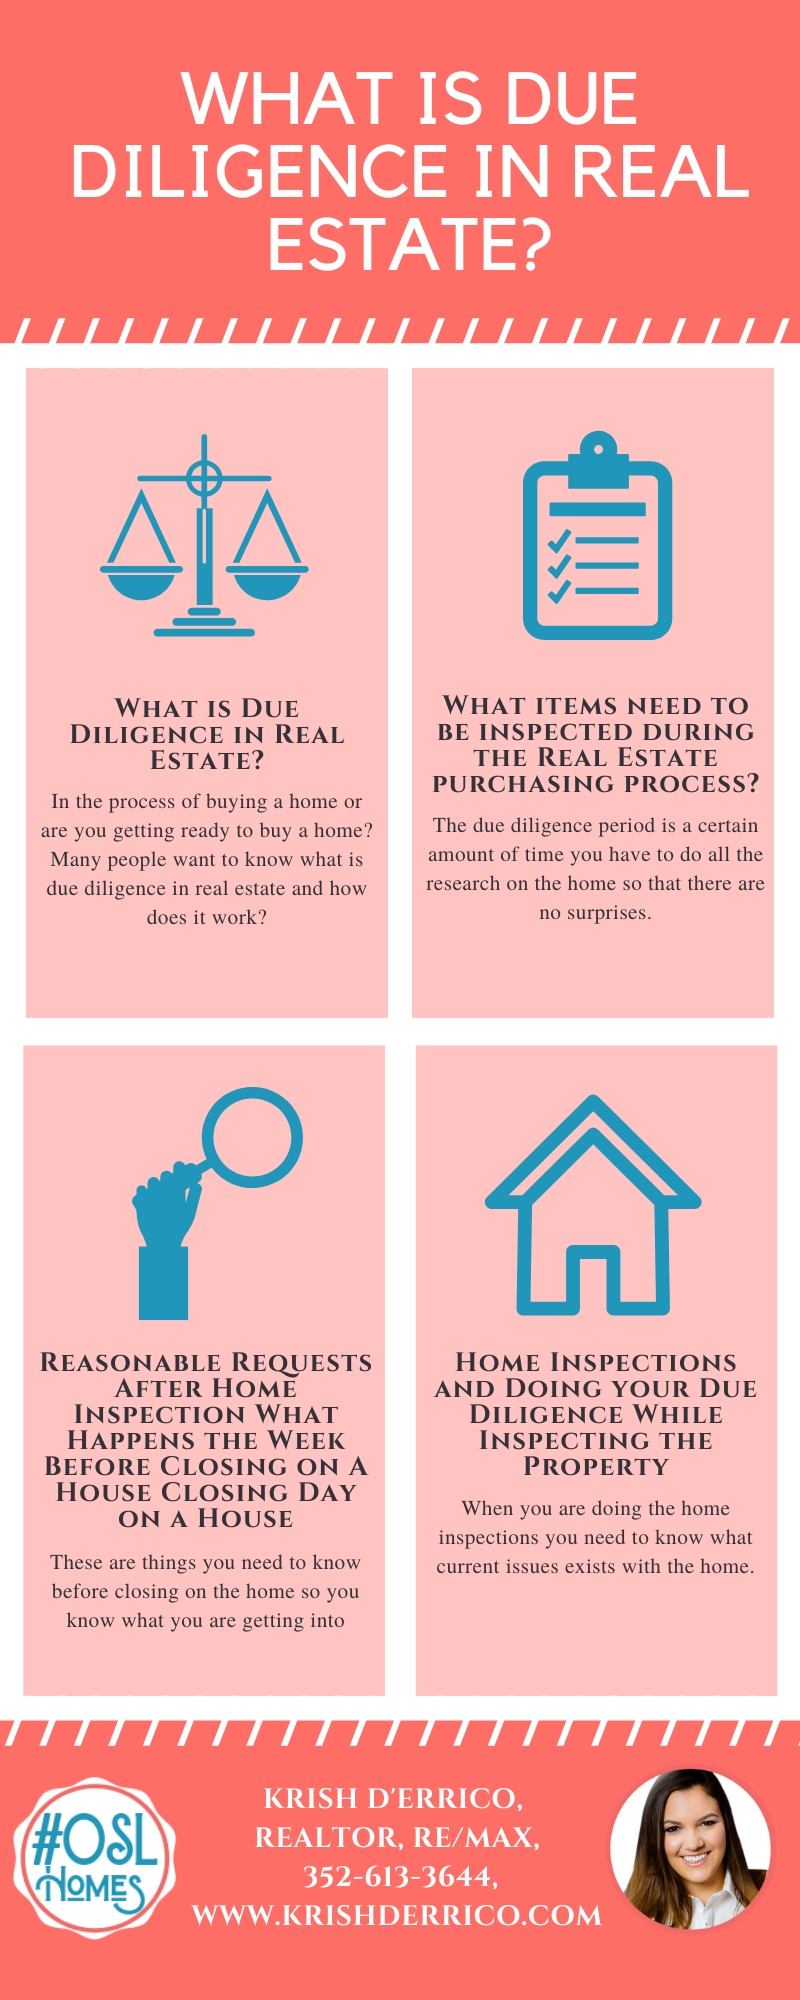 What is Due Diligence in Real Estate, What is Due Diligence in Real Estate